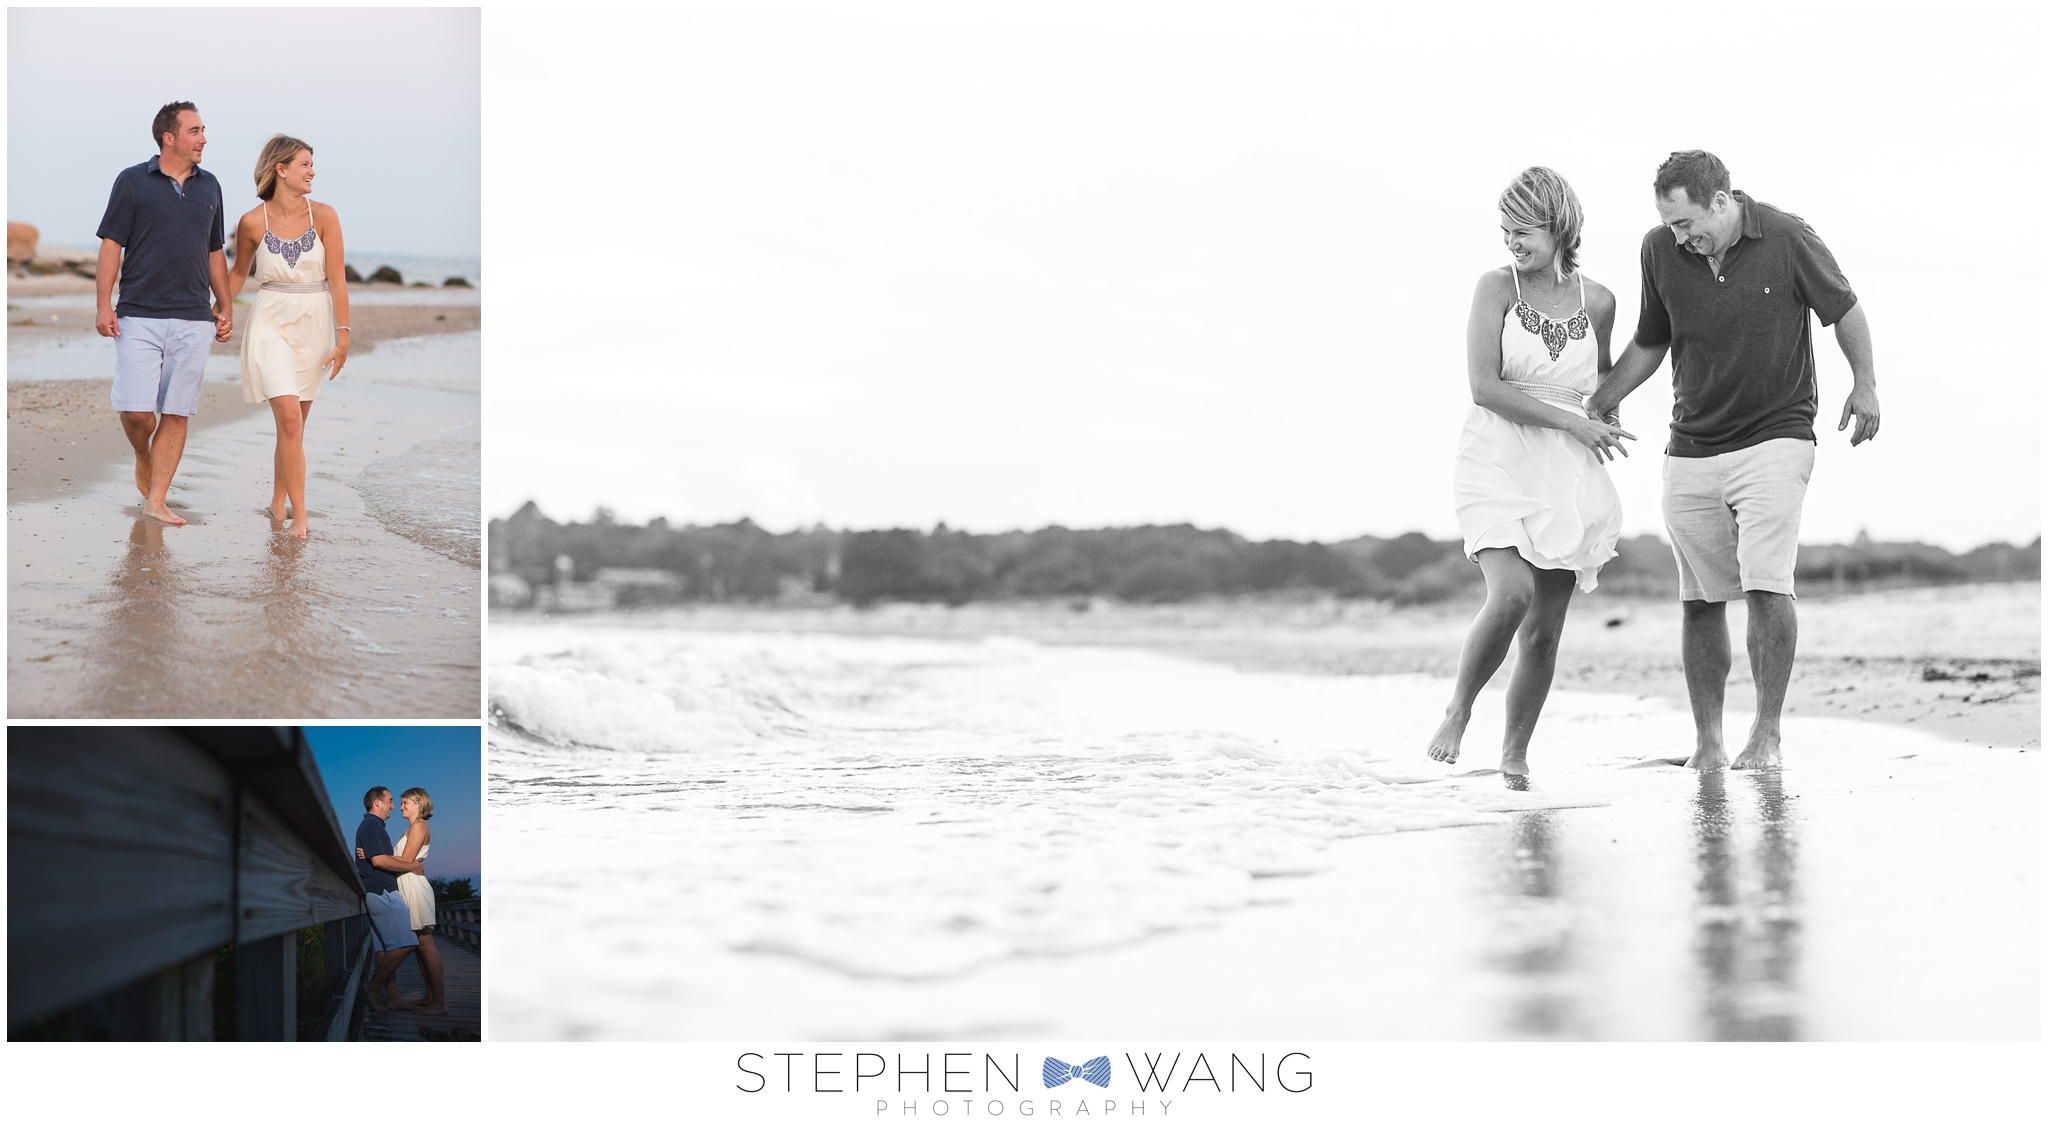 stephen wang photography connecticut wedding photographer harkness park engagement session ct shoreline eolia mansion _0009.jpg